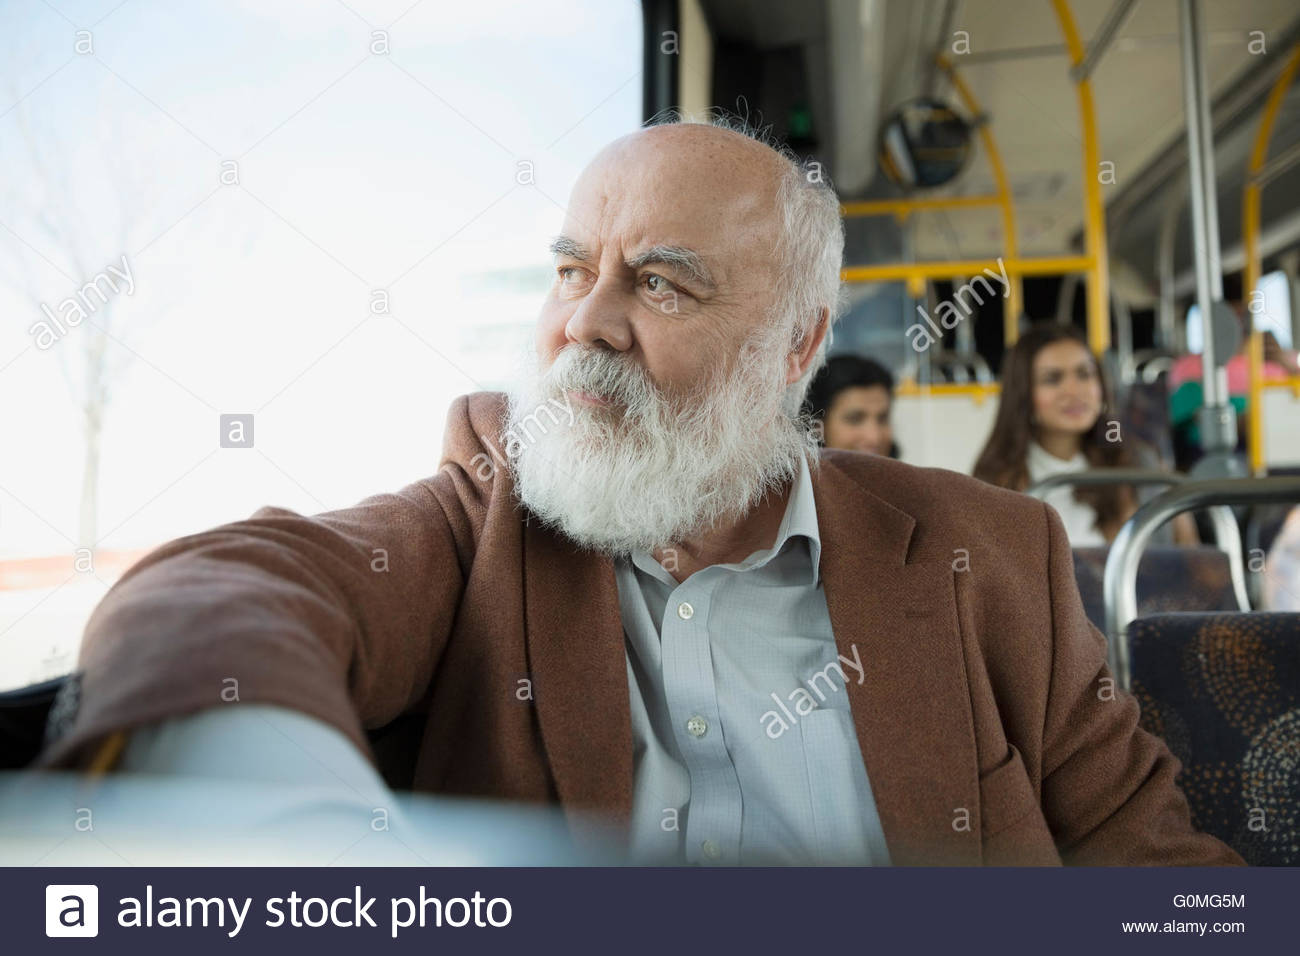 Pensive senior man riding bus looking out window - Stock Image